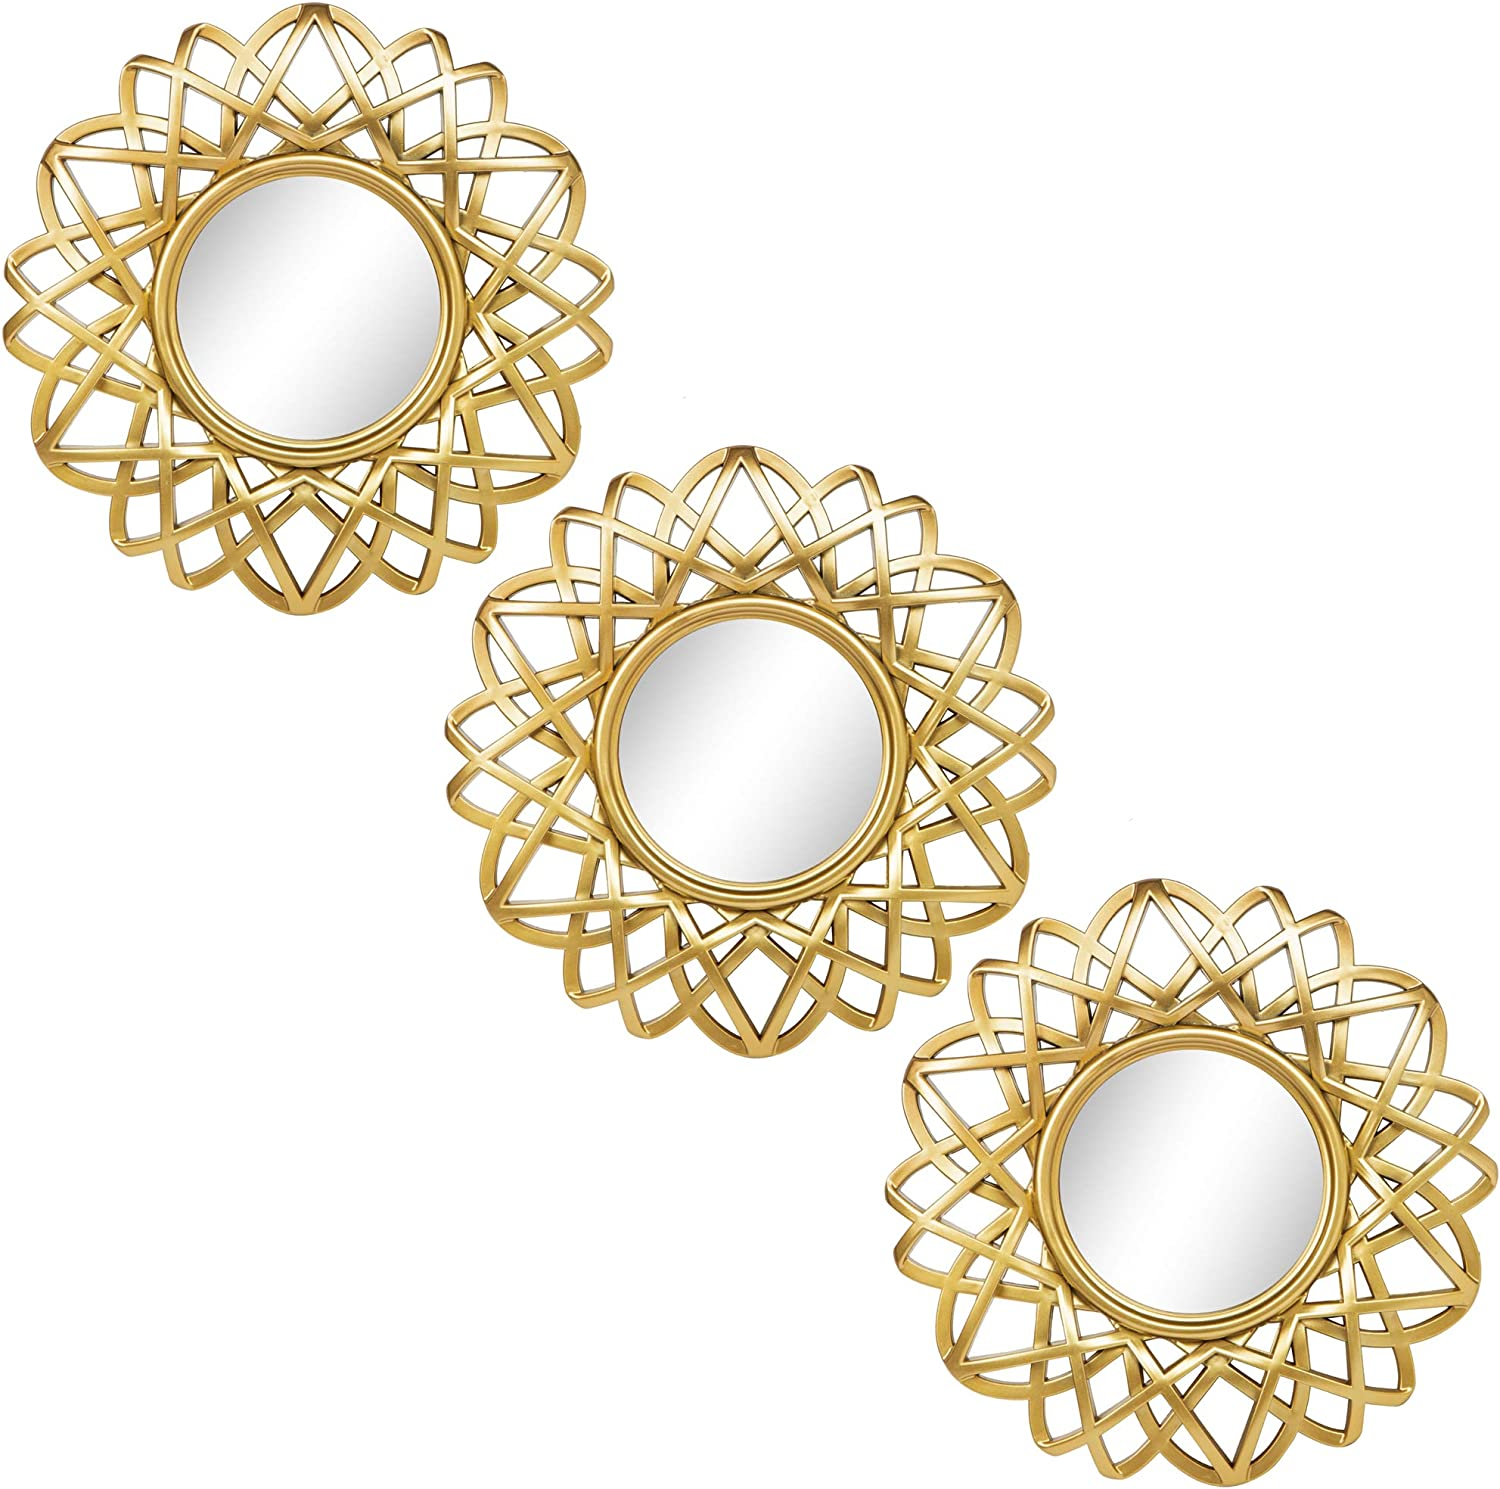 Small Round Mirrors for Wall Decor Set of 3 - Great Home Accessories for Bedroom, Living Room & Dinning Room (M004)